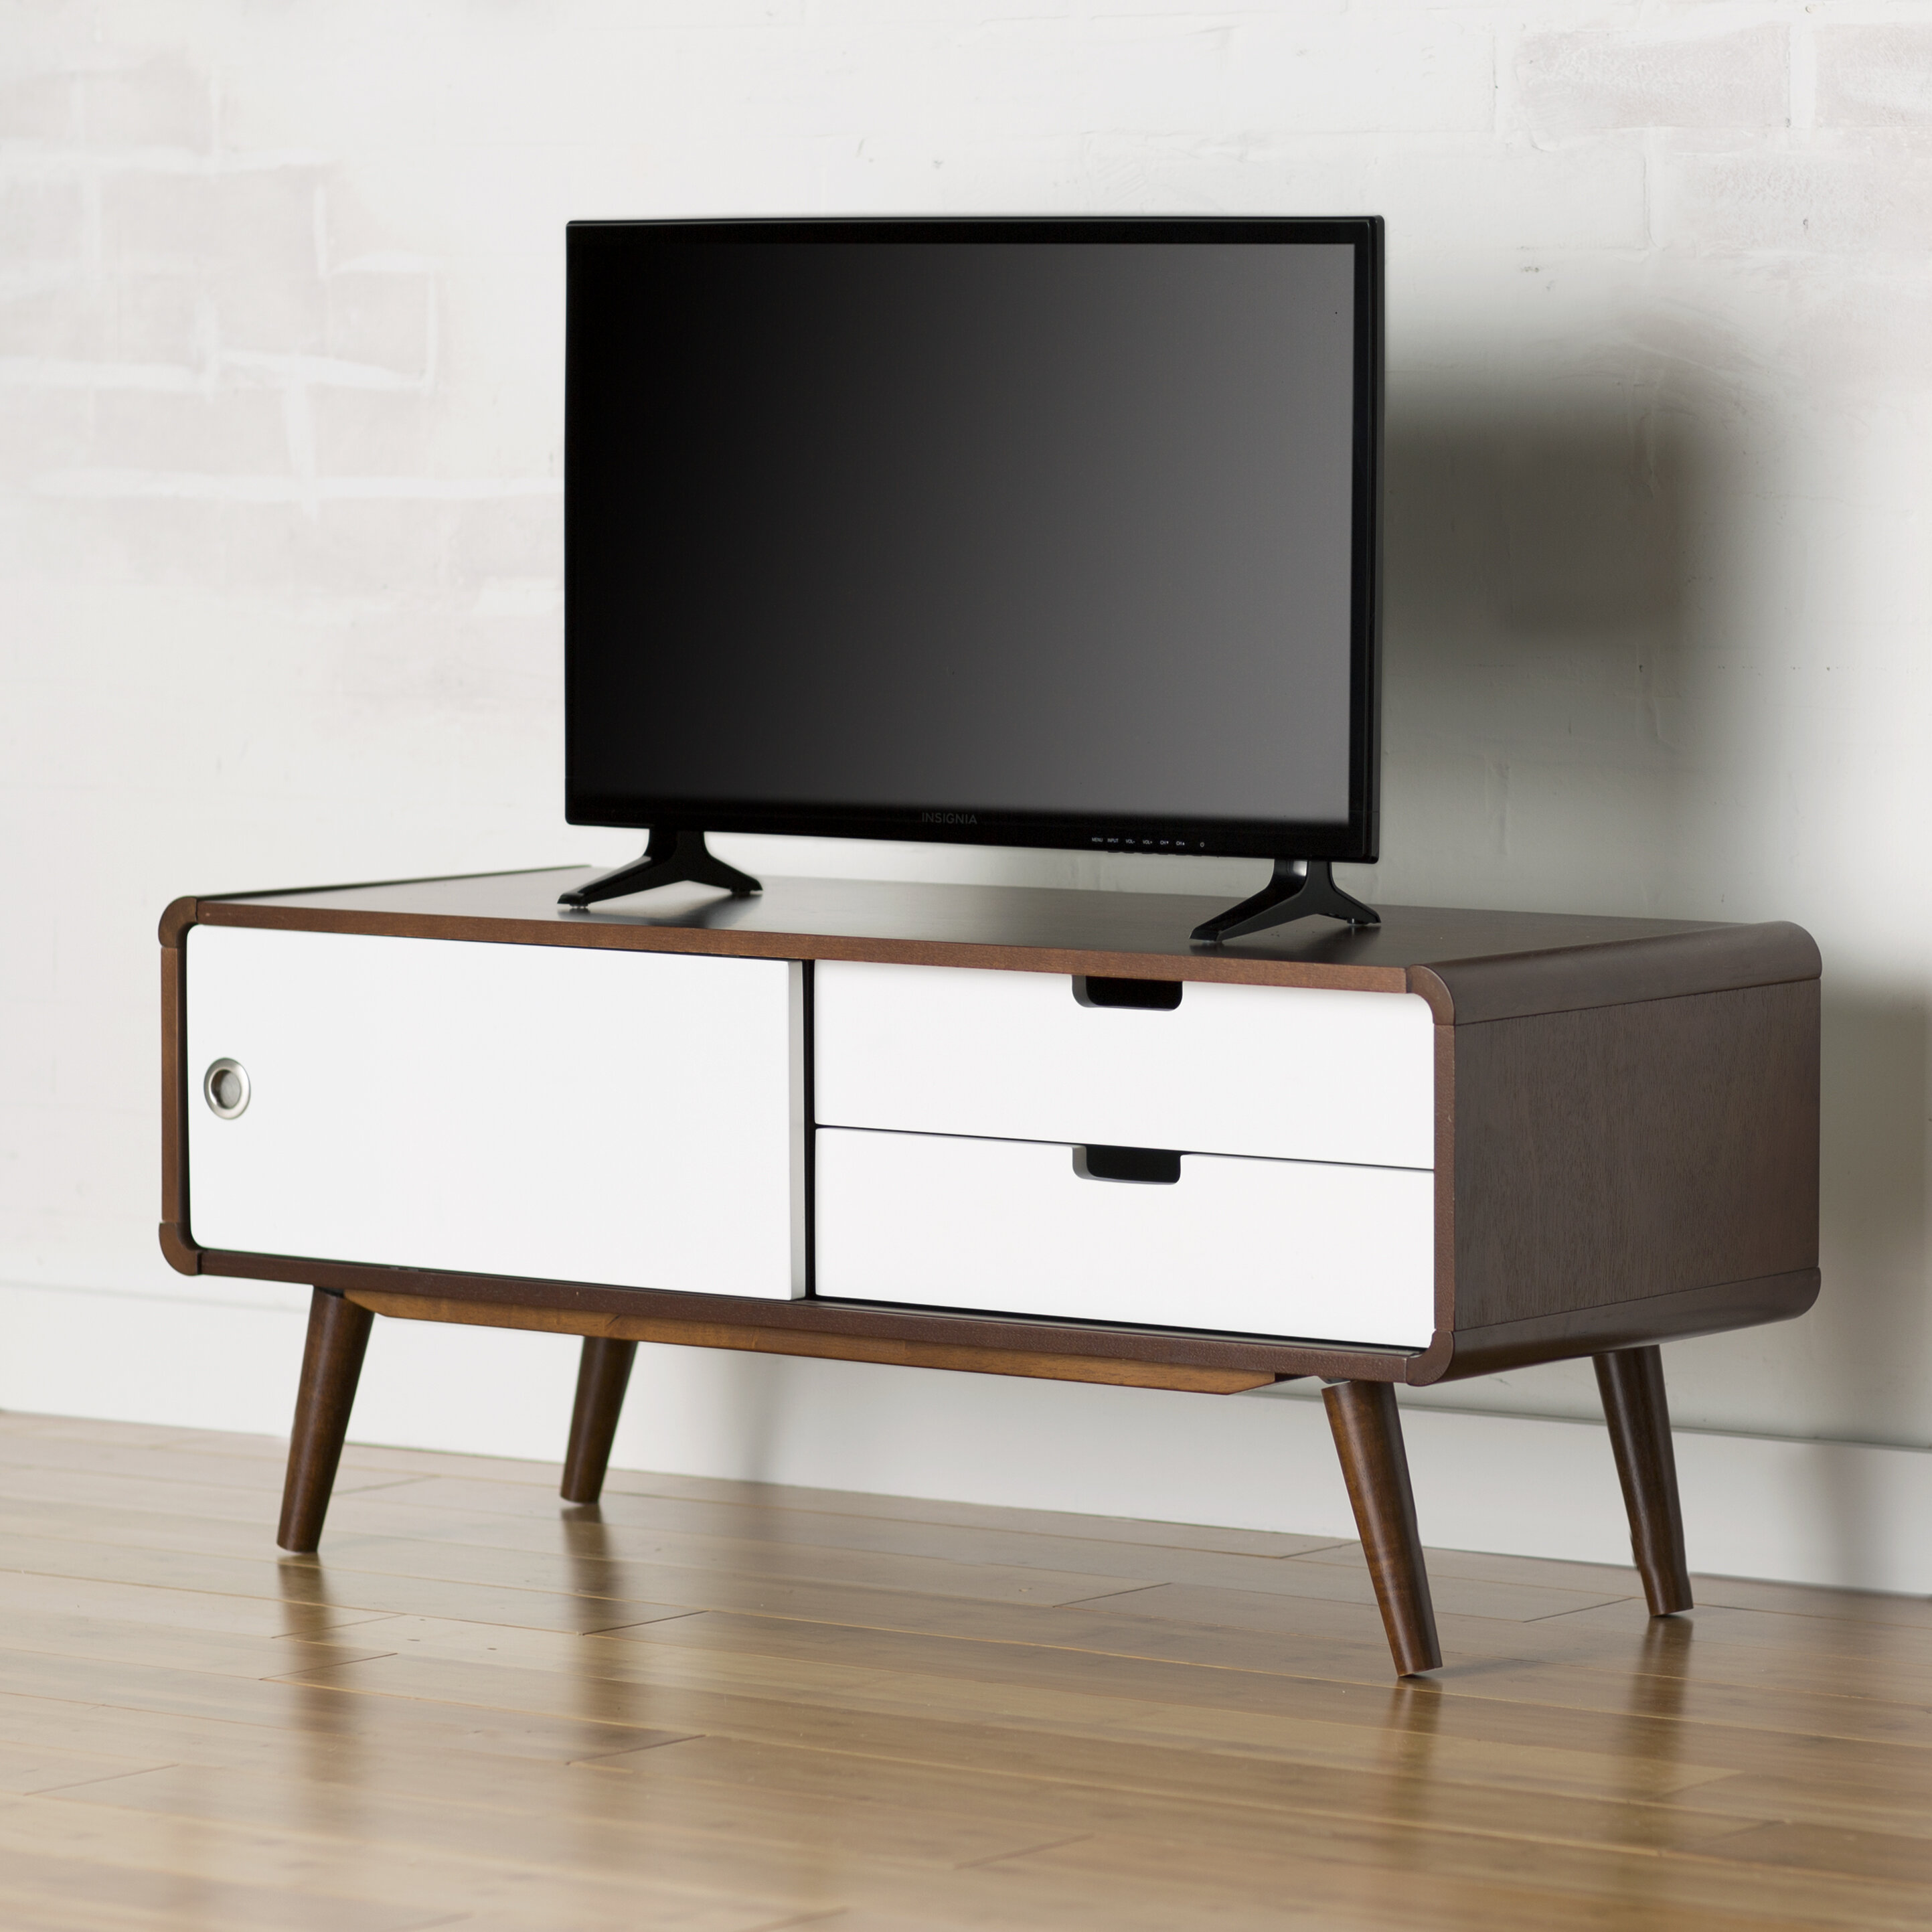 Langley Street Soren Tv Stand For Tvs Up To 40 Reviews Wayfair